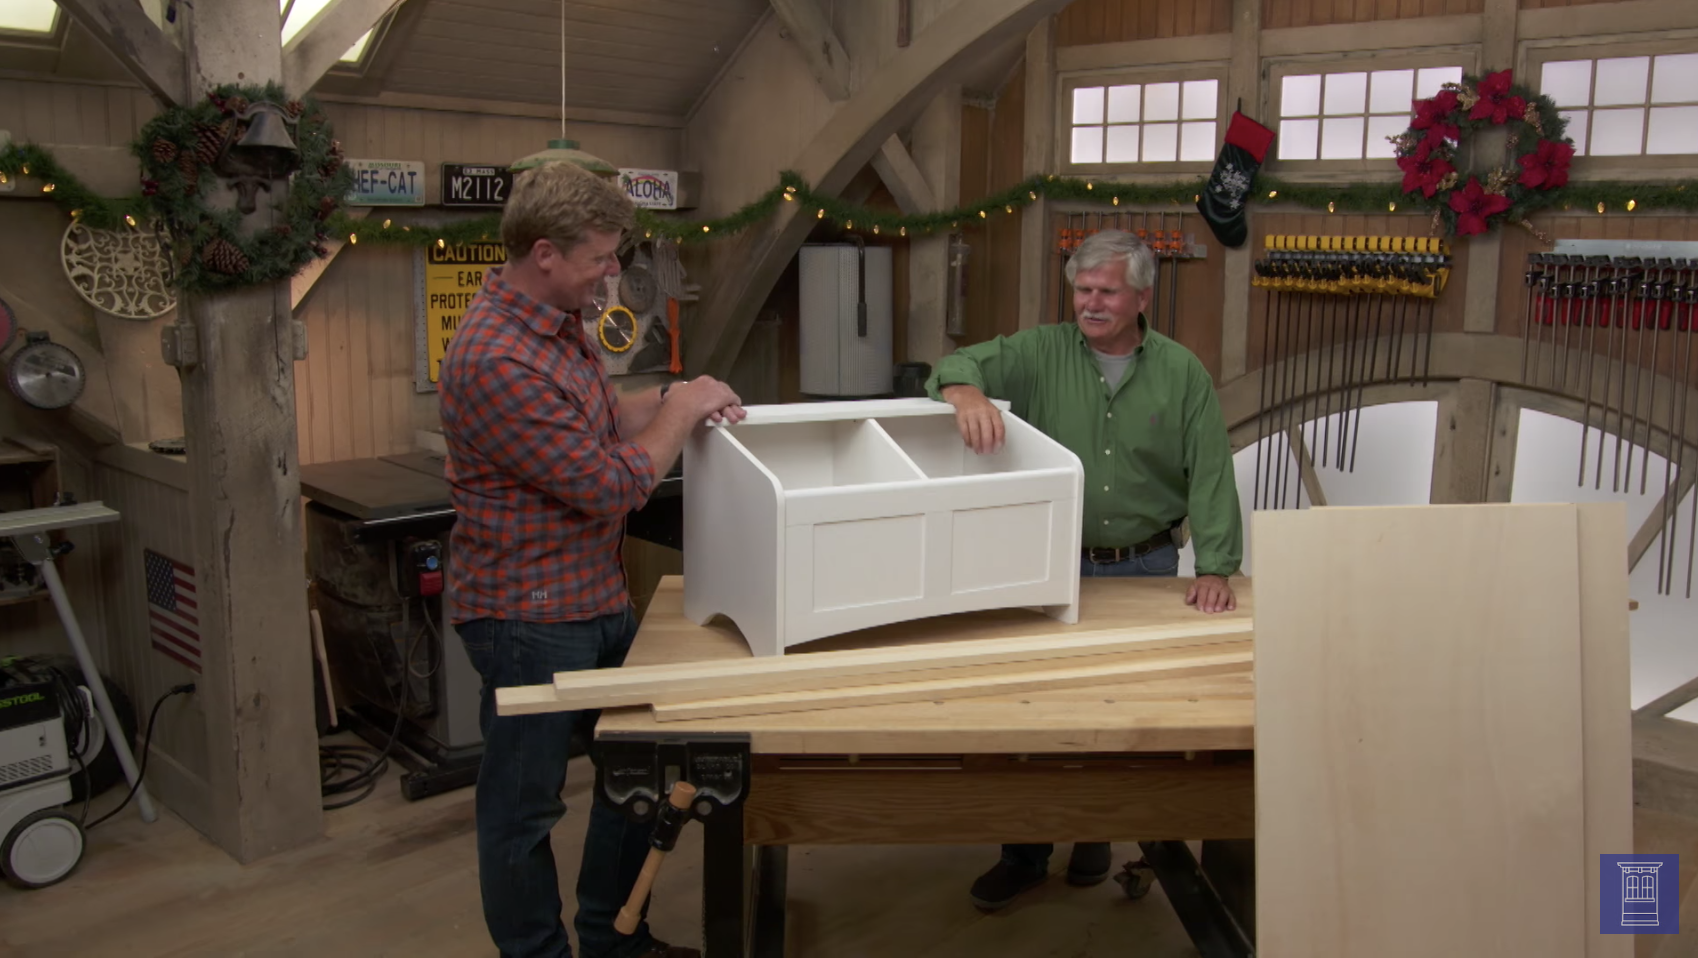 Step By Step: How To Build a Holiday Toy Box